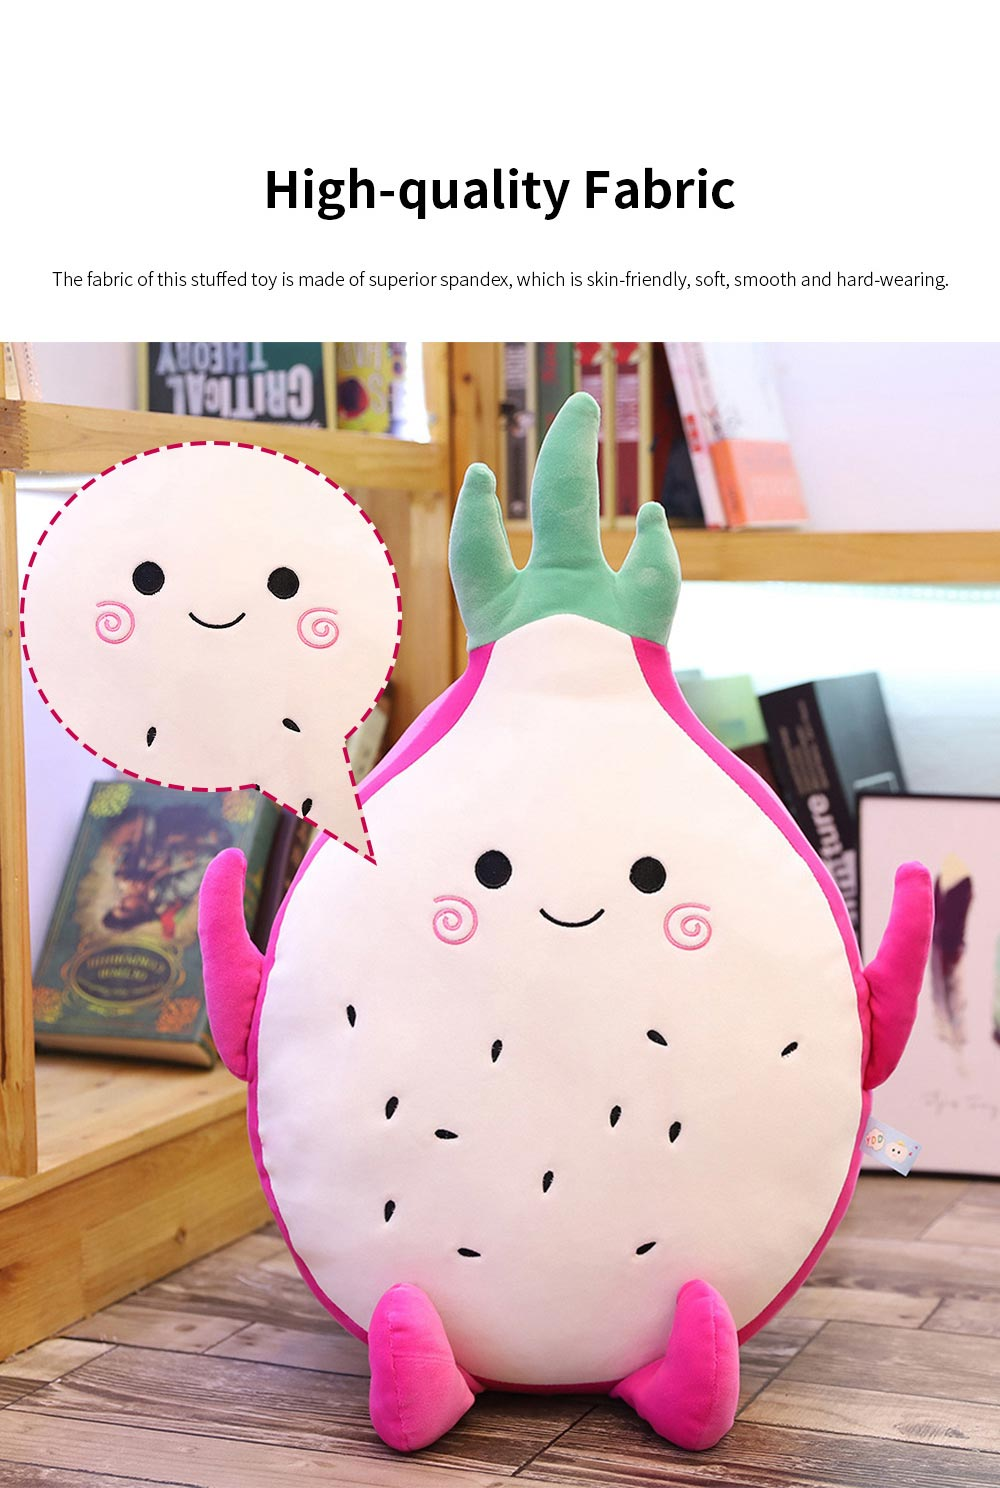 Cute Creative Imitation Cartoon Dragon Fruit Pitaya Stuffed Toy Plush Doll Bolster Cushion Children New Year Gift 1